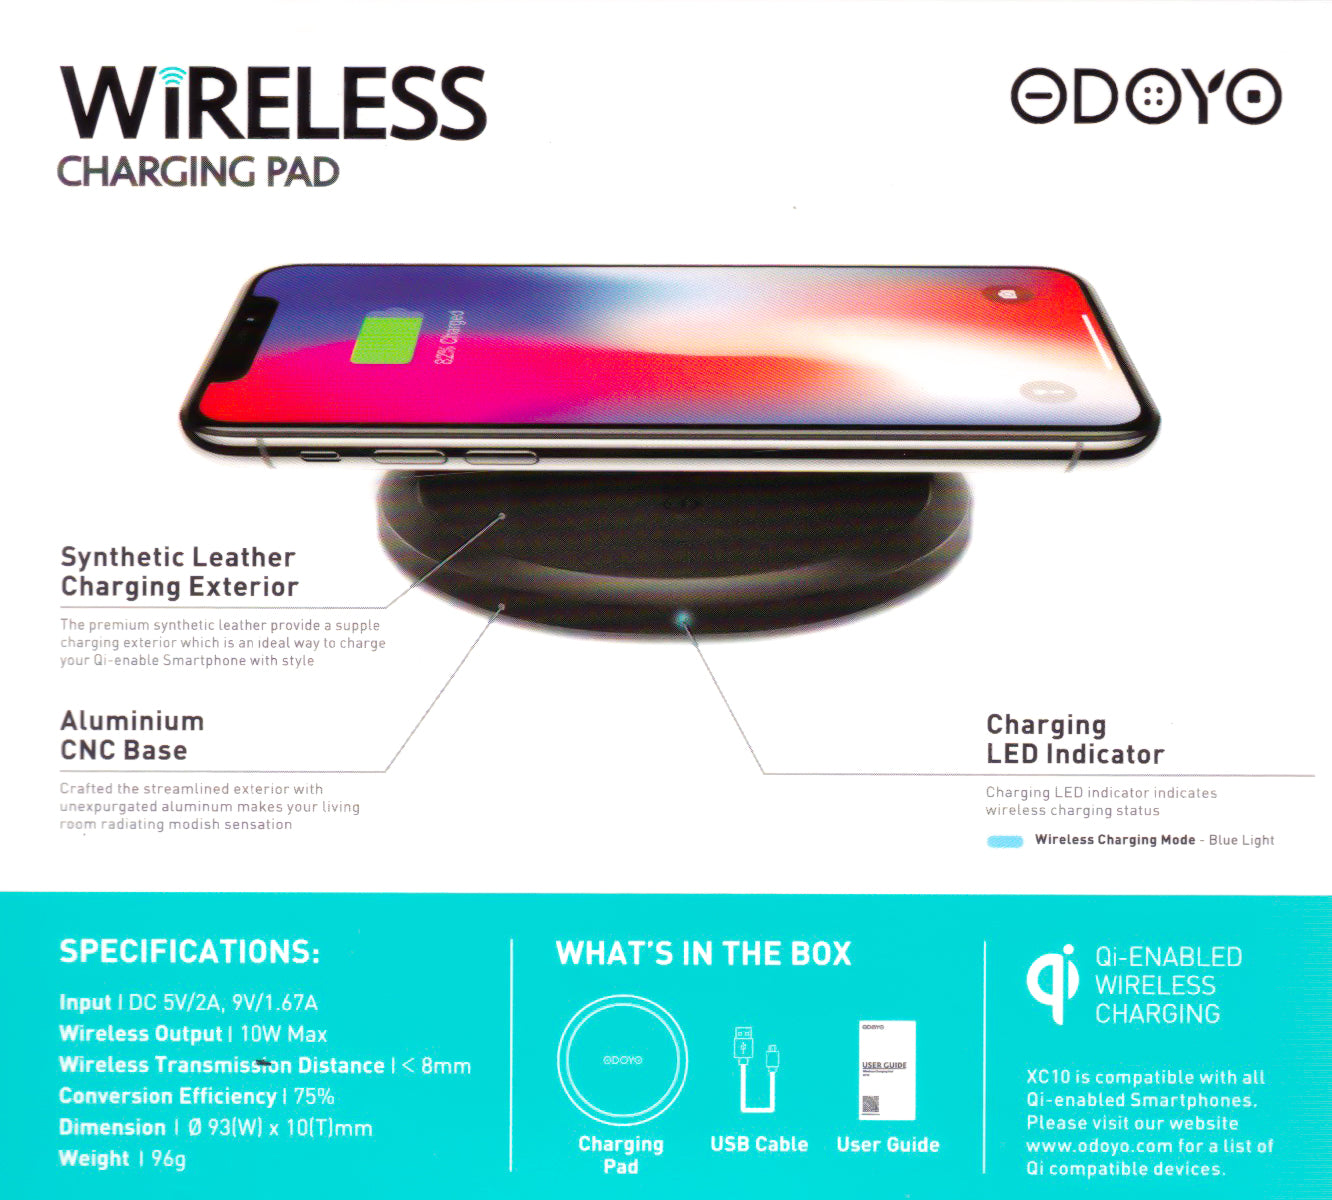 Odoyo Fast Charge Wireless Charging Pad